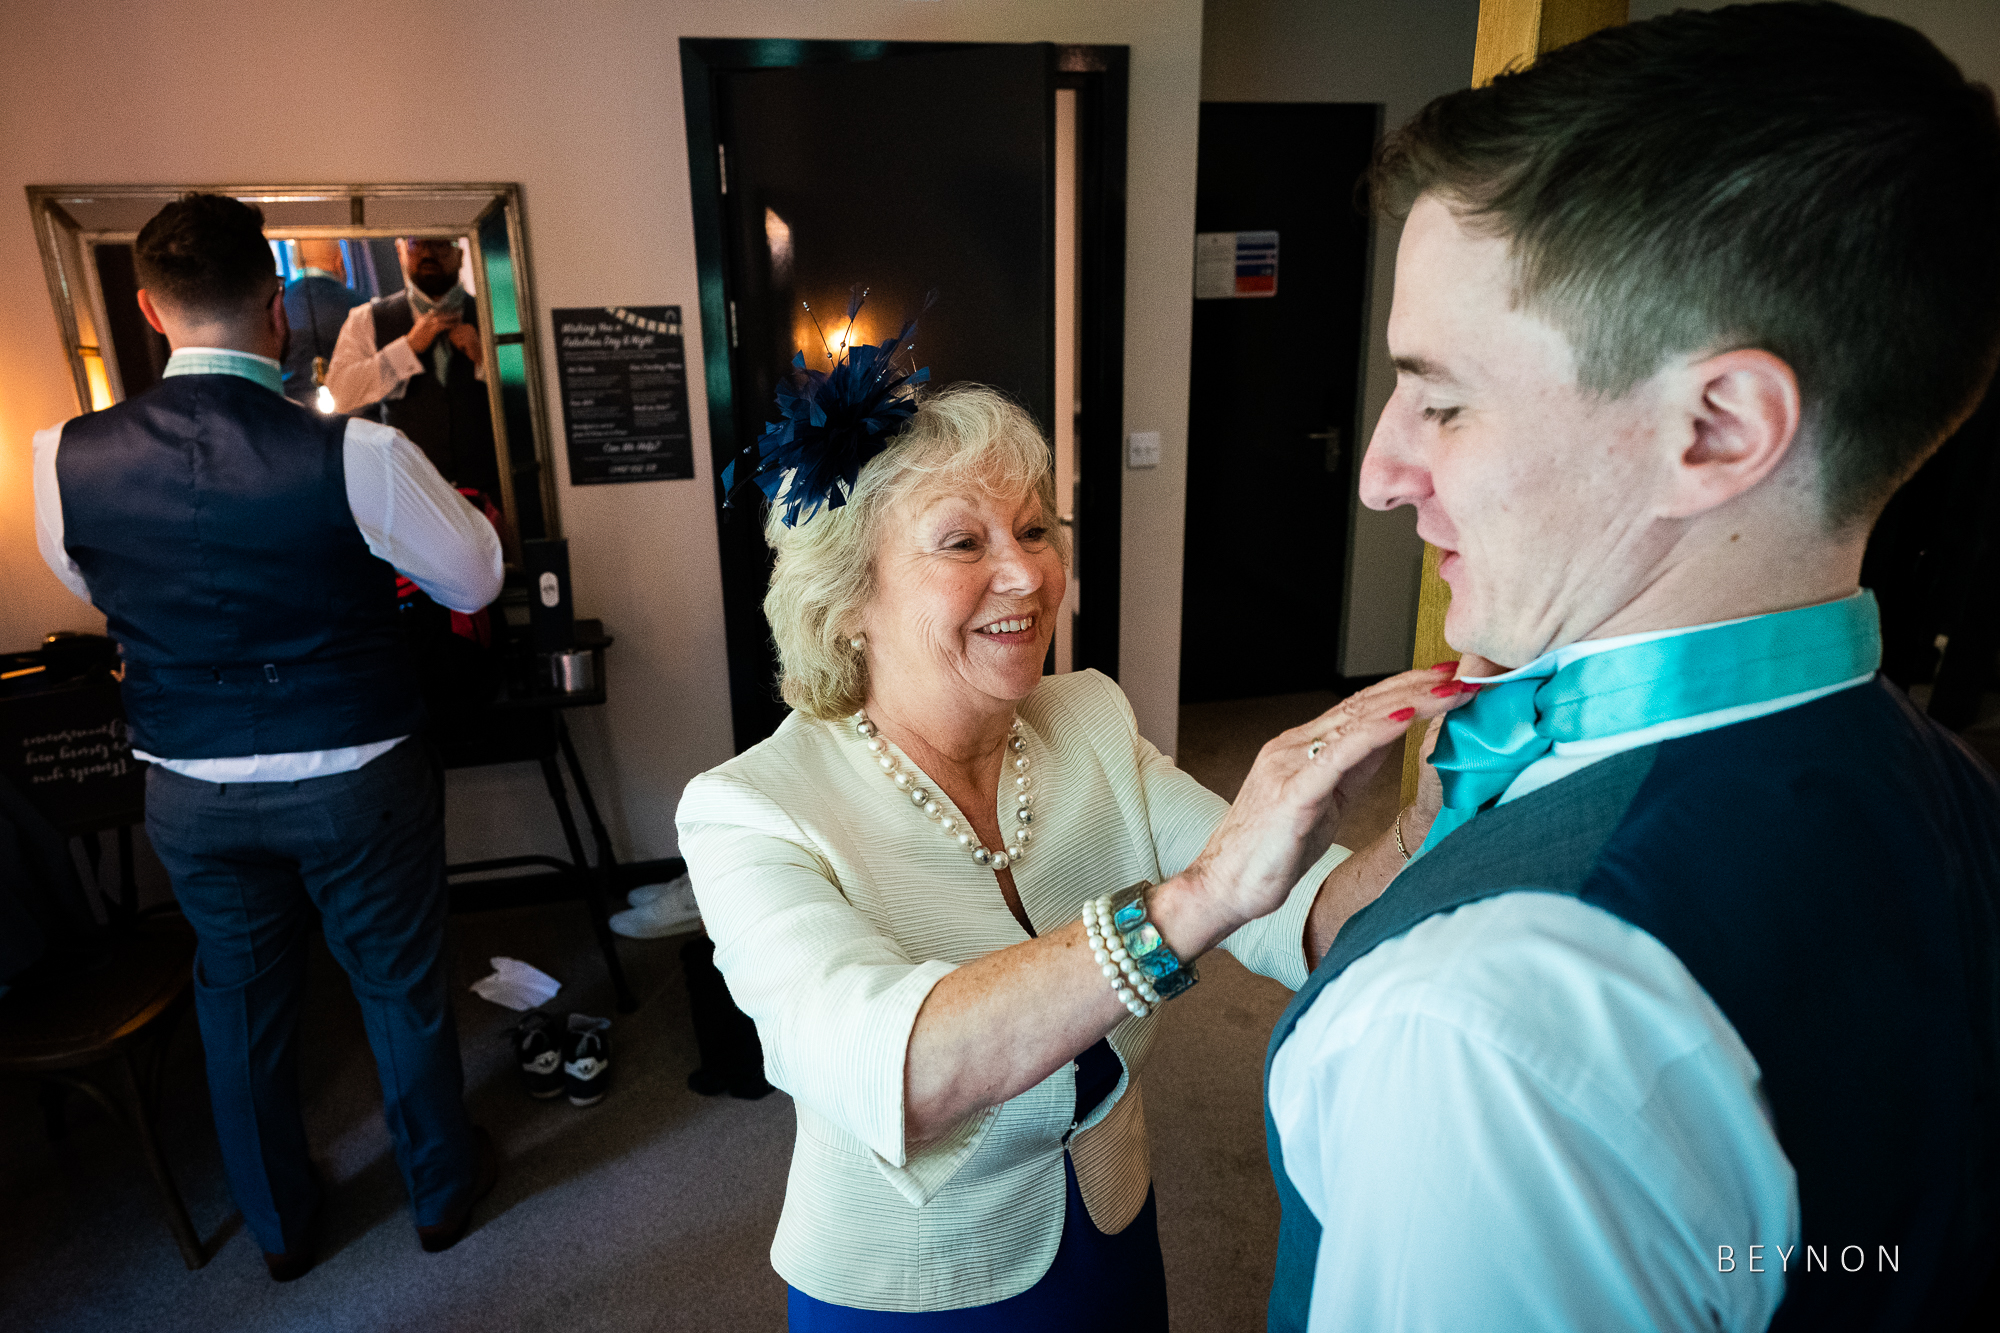 Guest helps with groomsman's cravat